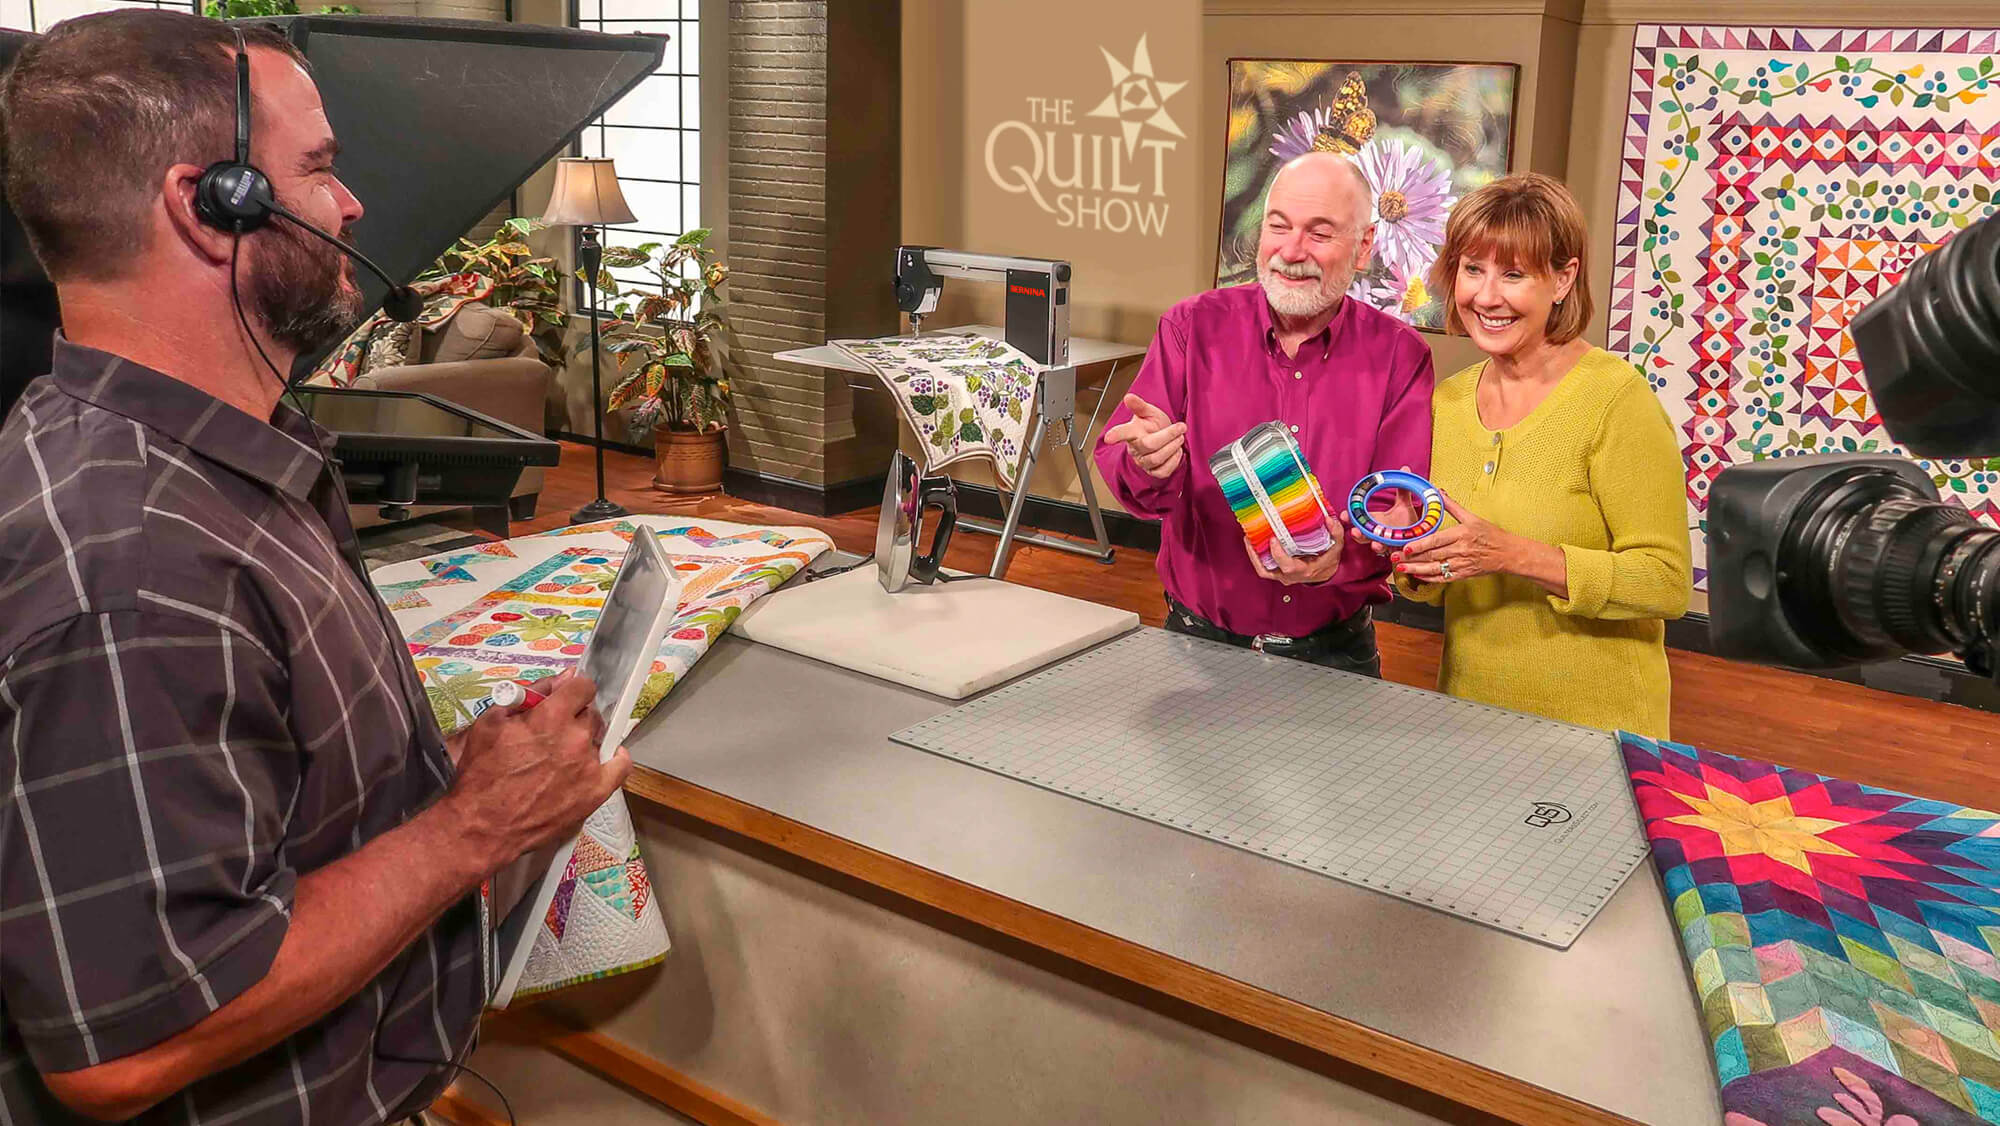 The Quilt Show - The #1 Quilting Website On The Internet